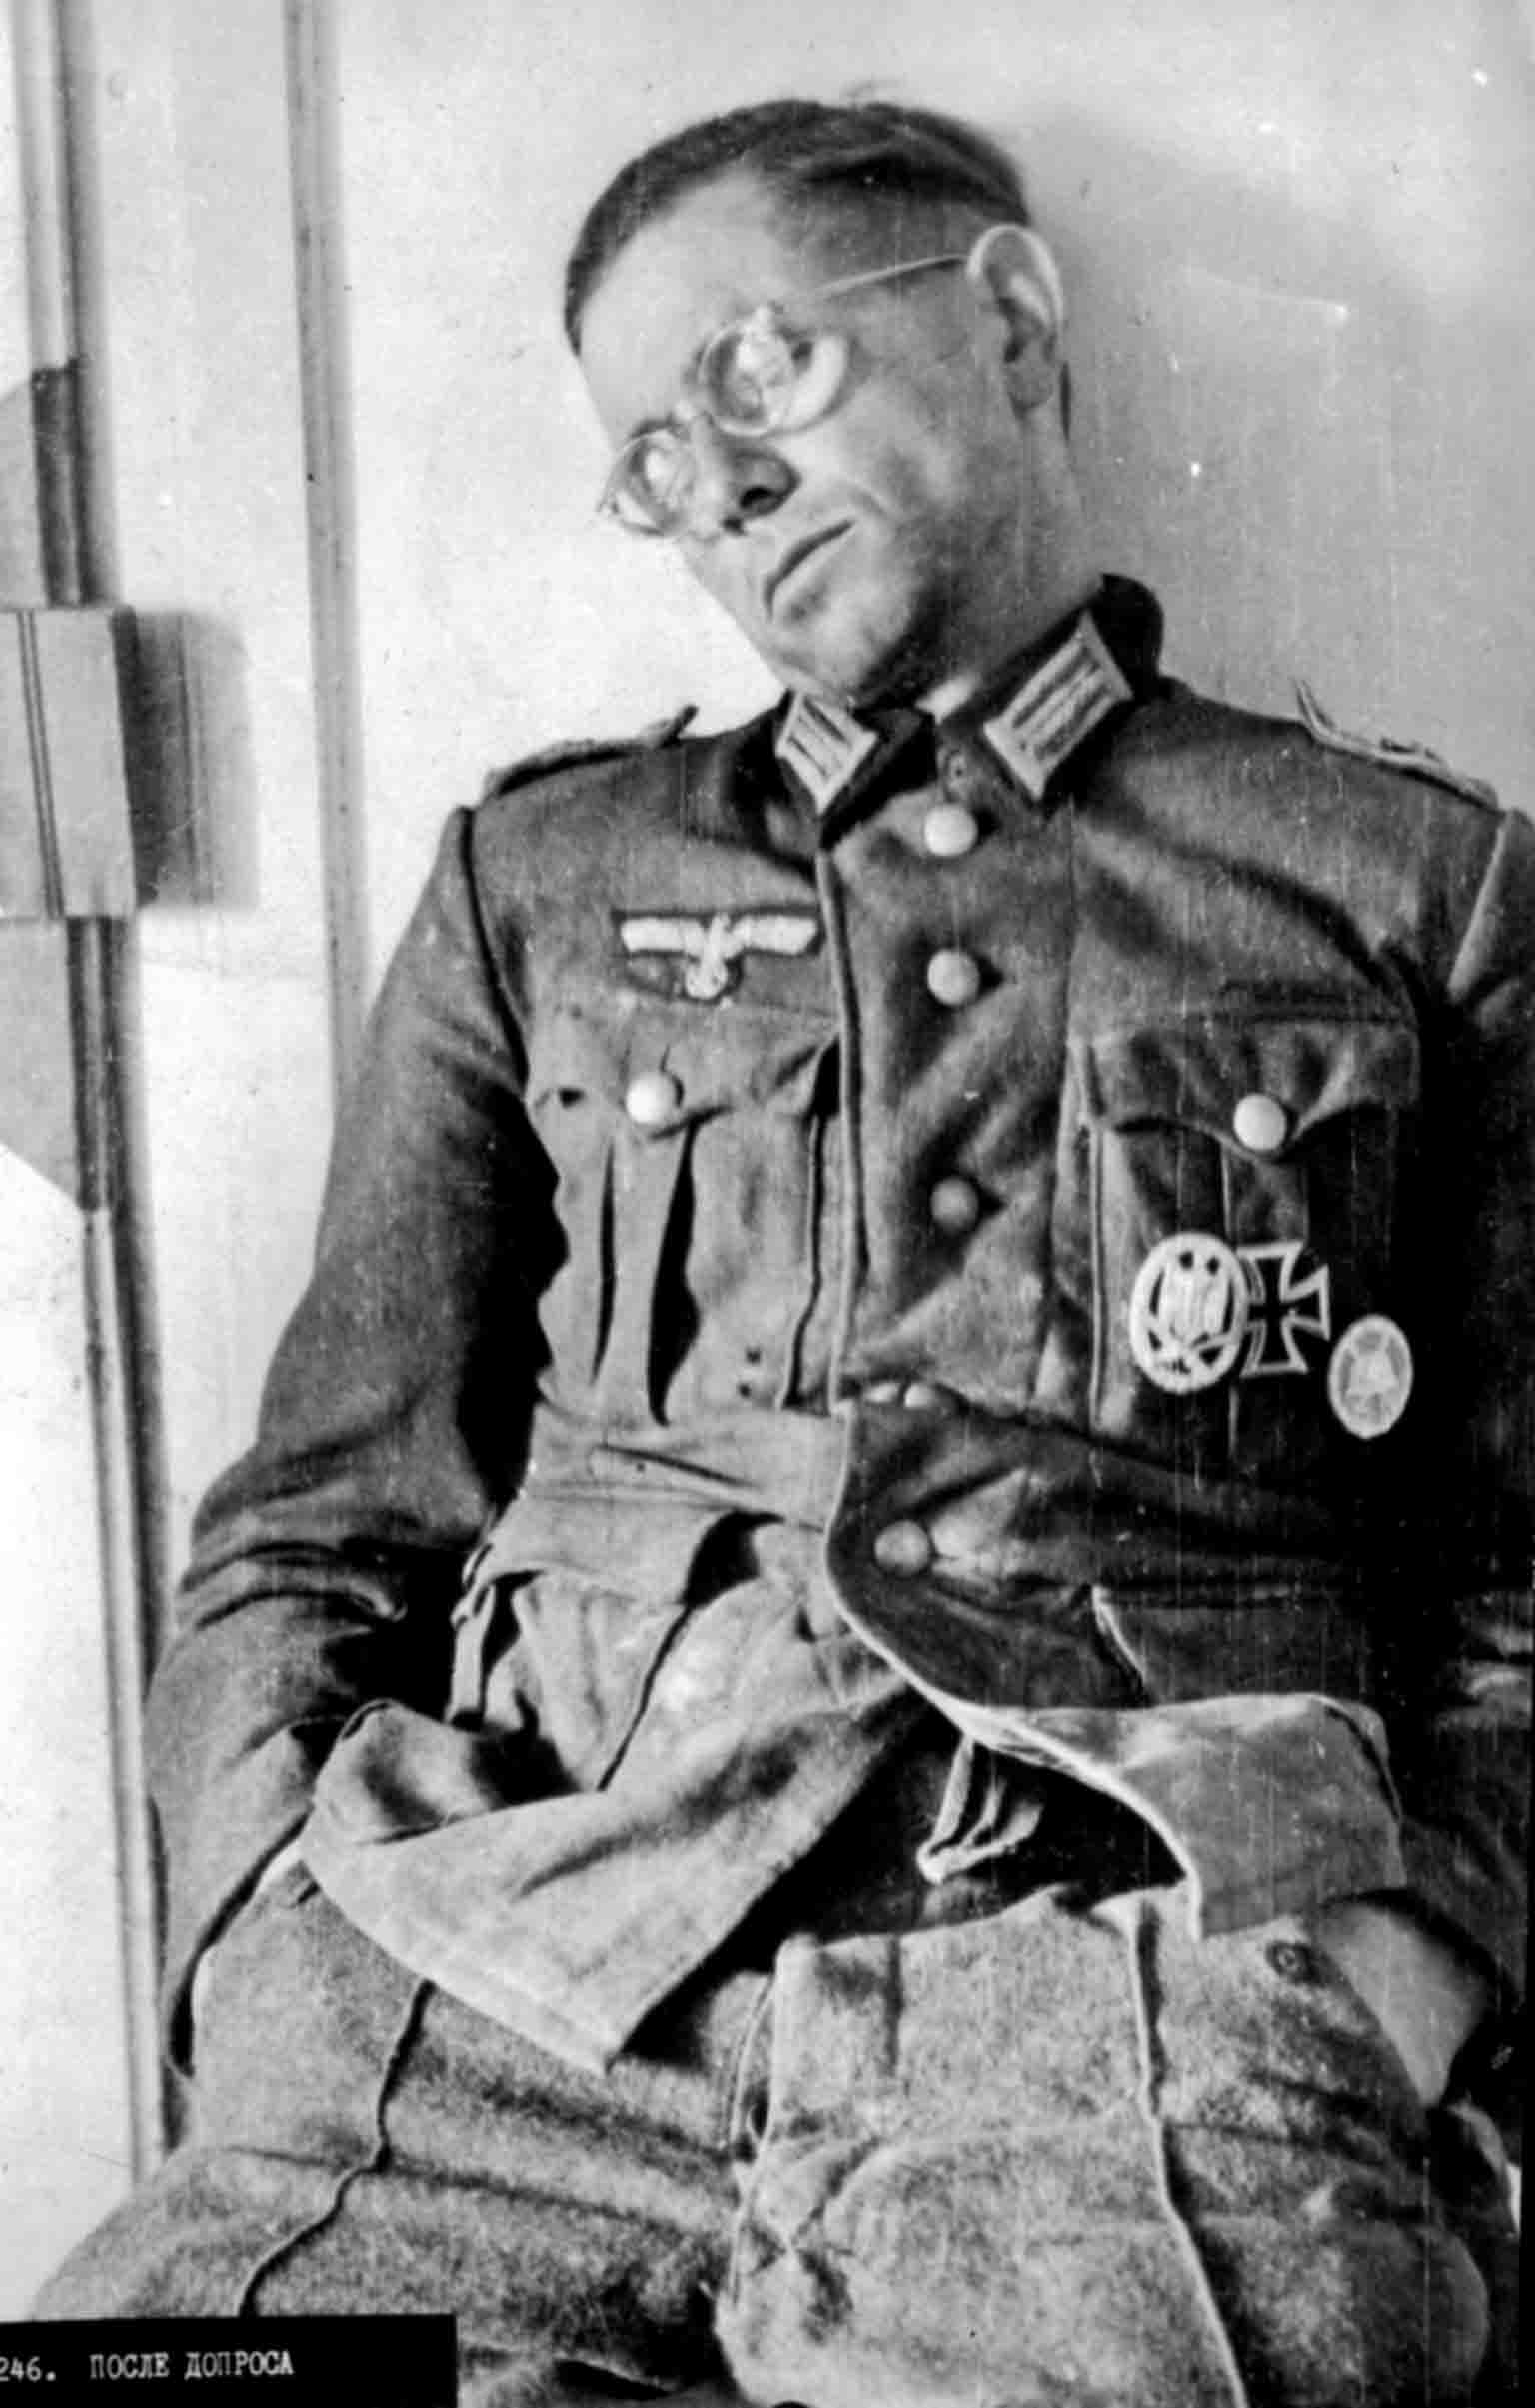 World War 2 - officer of the Wehrmacht